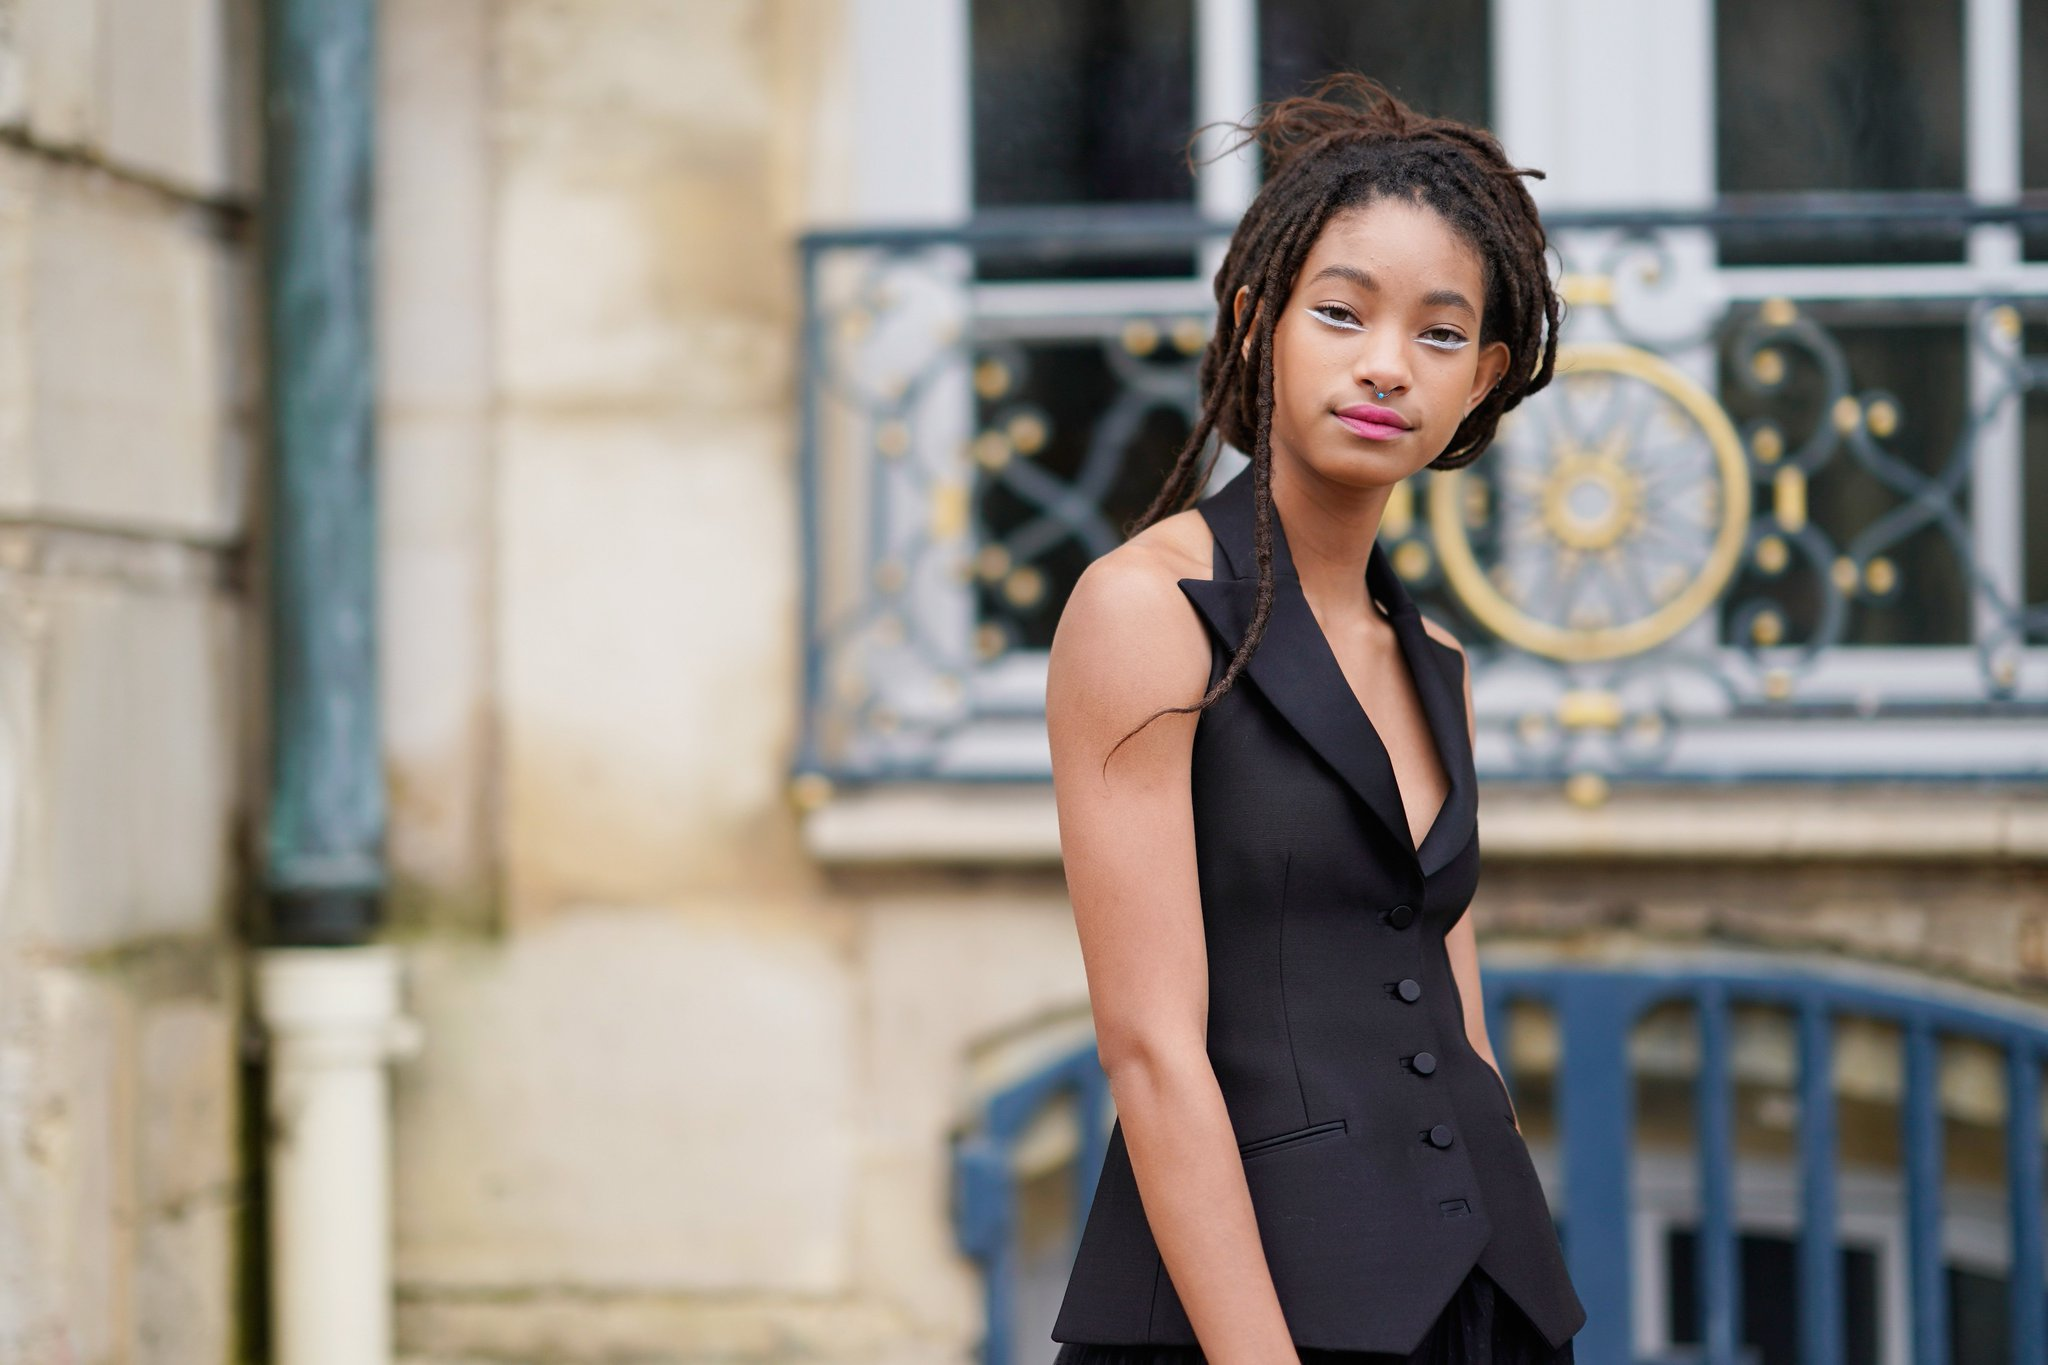 Willow Smith says she self-harmed as a child. https://t.co/lt27a6vtc1 https://t.co/MPuWQSy80w